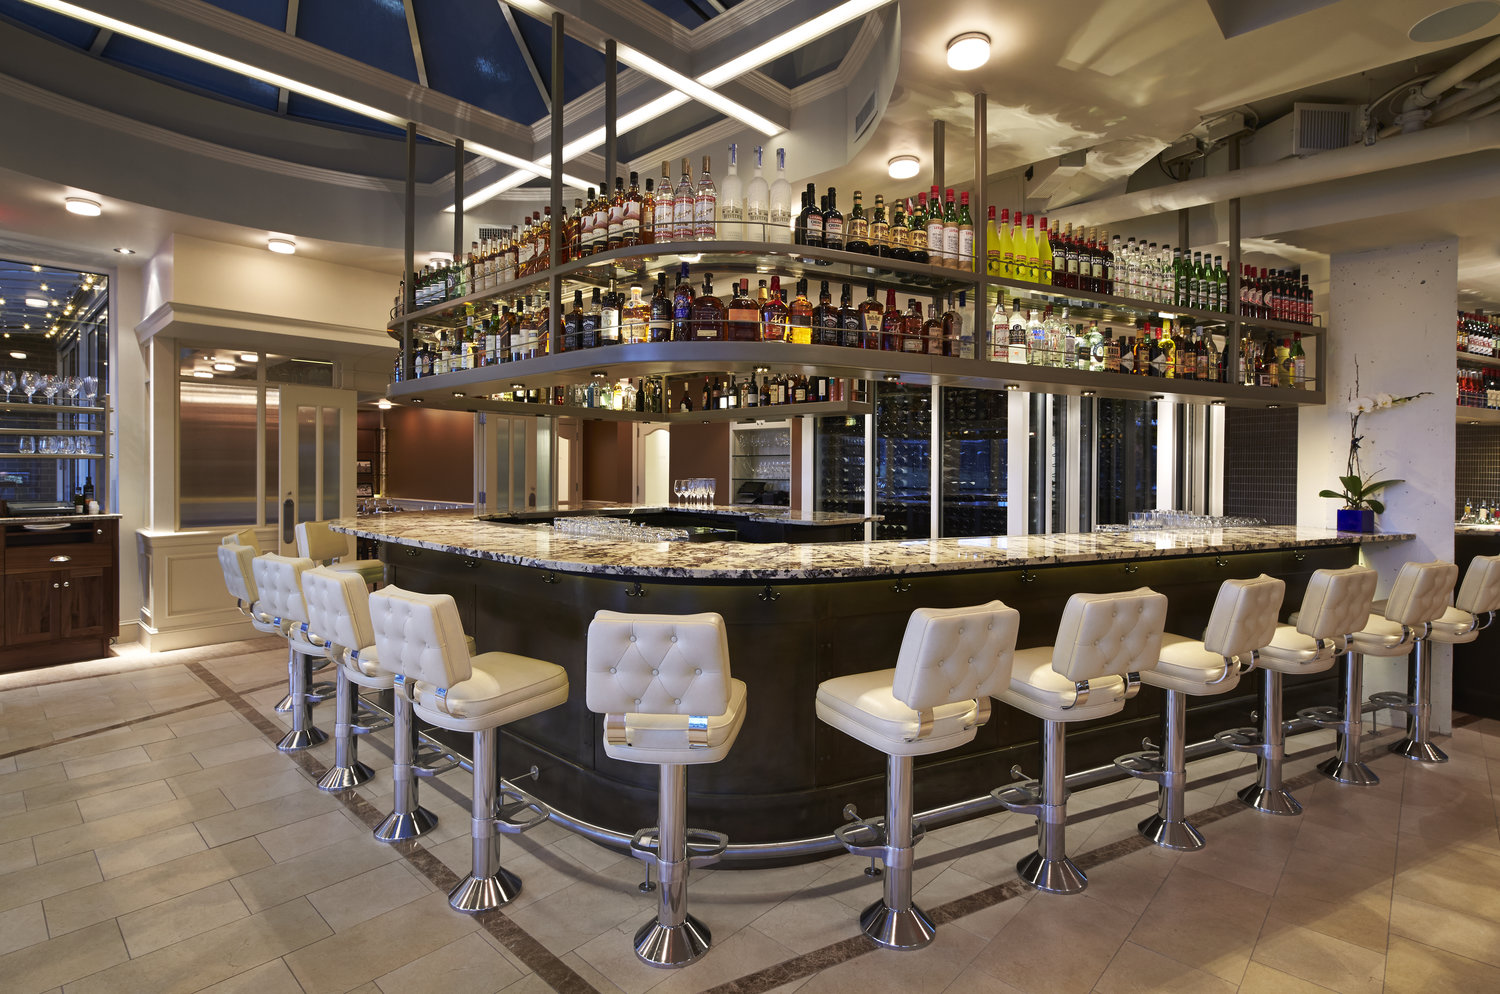 MAIN BAR event space at Fiola Mare in Washington DC, Maryland, Virginia, DC Area